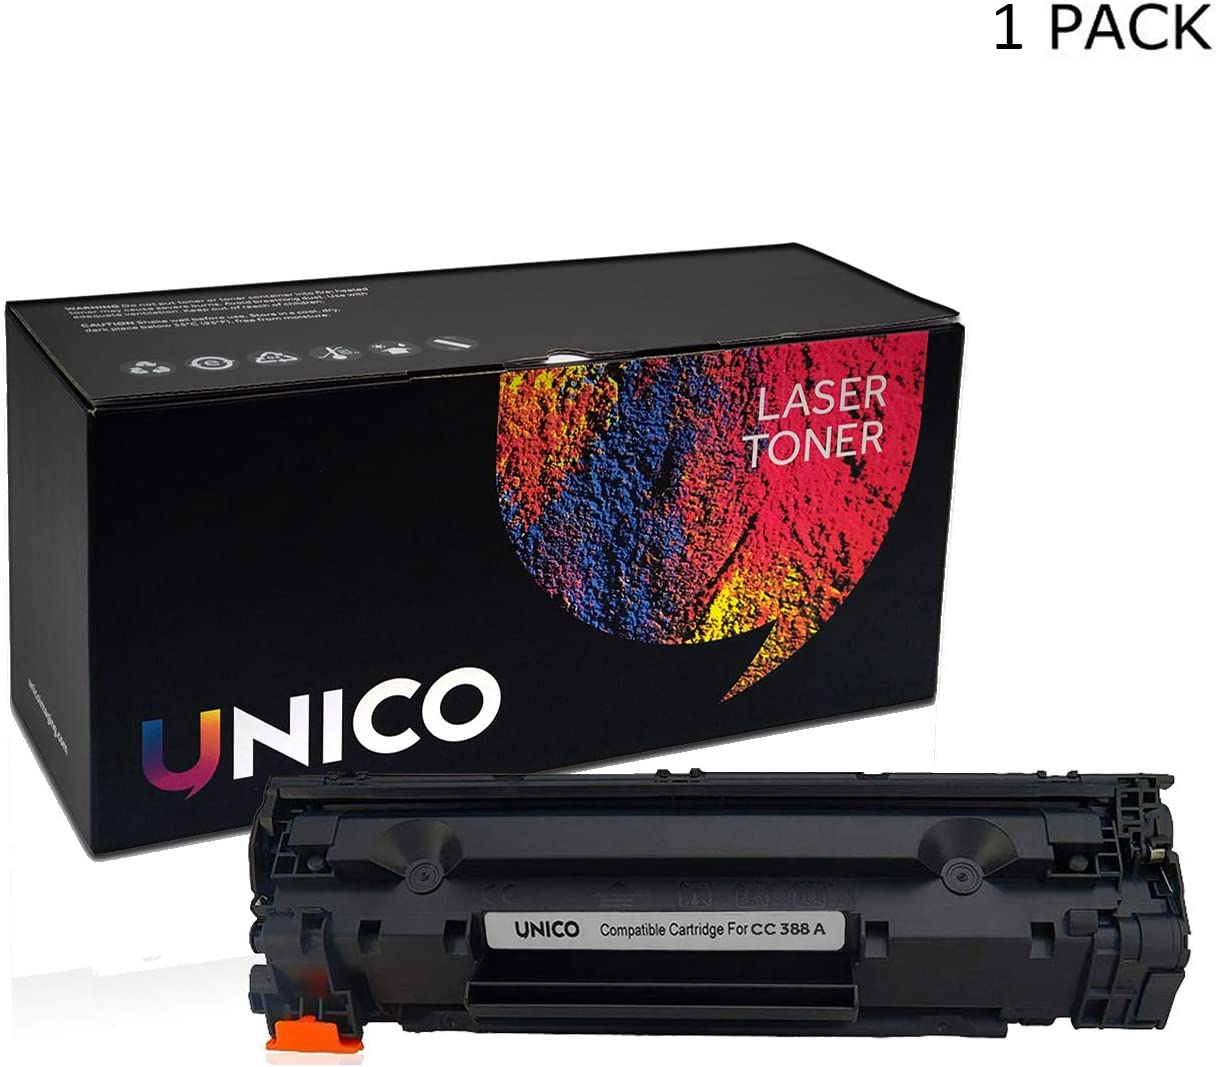 UNICO 88A (C388A) Compatible Toner Cartridge Replacement for HP P1007 1008 M1136 M1213NF M1216NFH (1Pack)